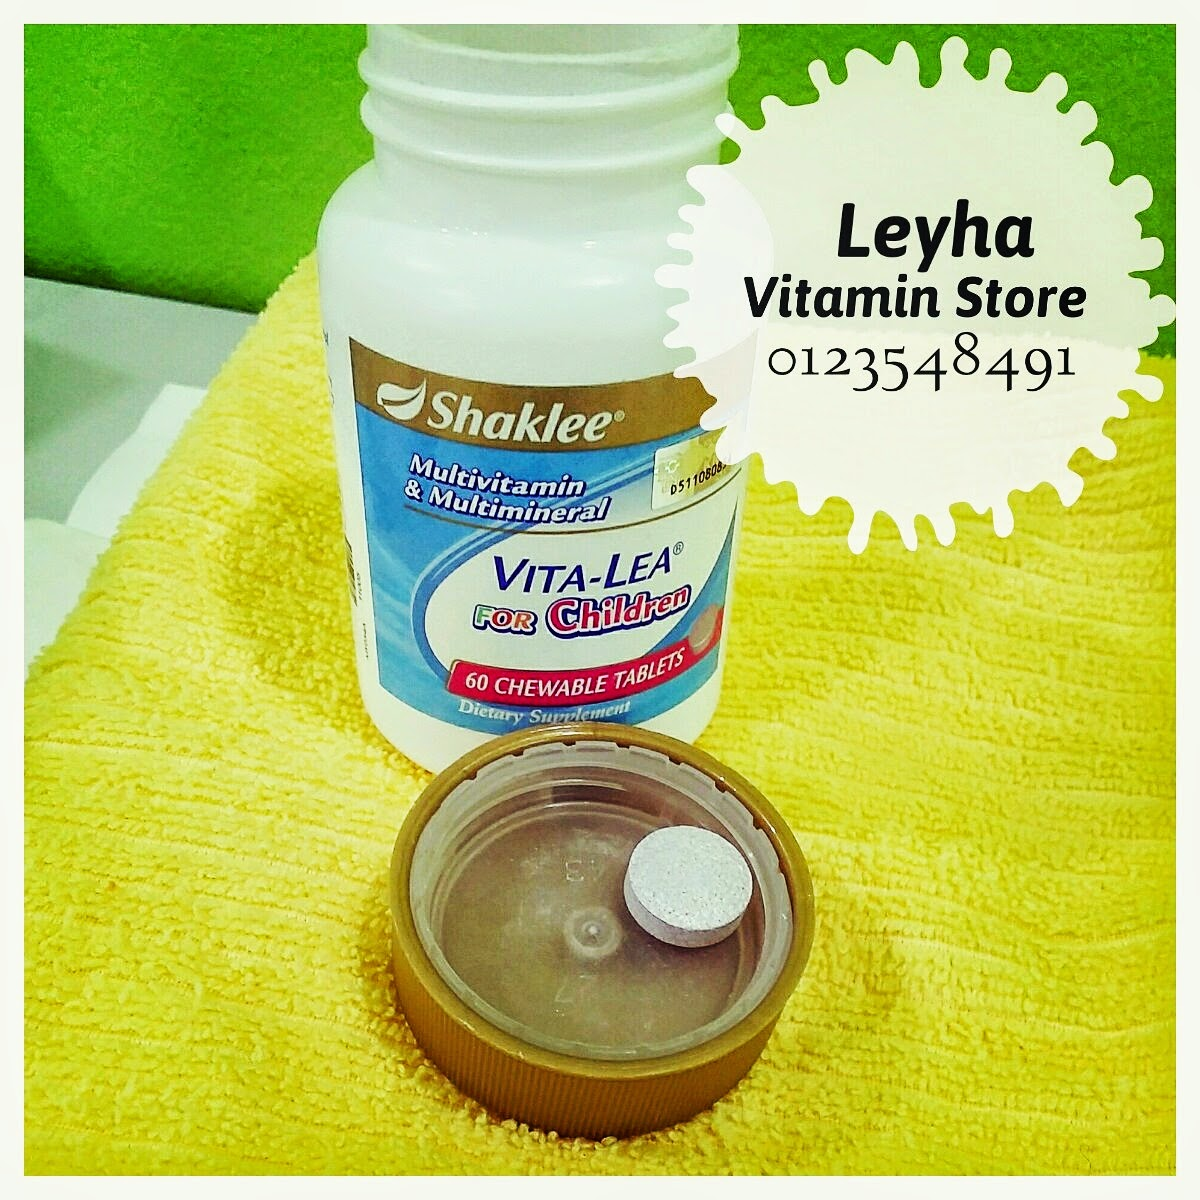 Vitalea for Children, Multivitamin Kanak-Kanak, Multivitamin budak-budak, multivitamin, vitamin for kids, vitamin for kid, supplemen kanak-kanak